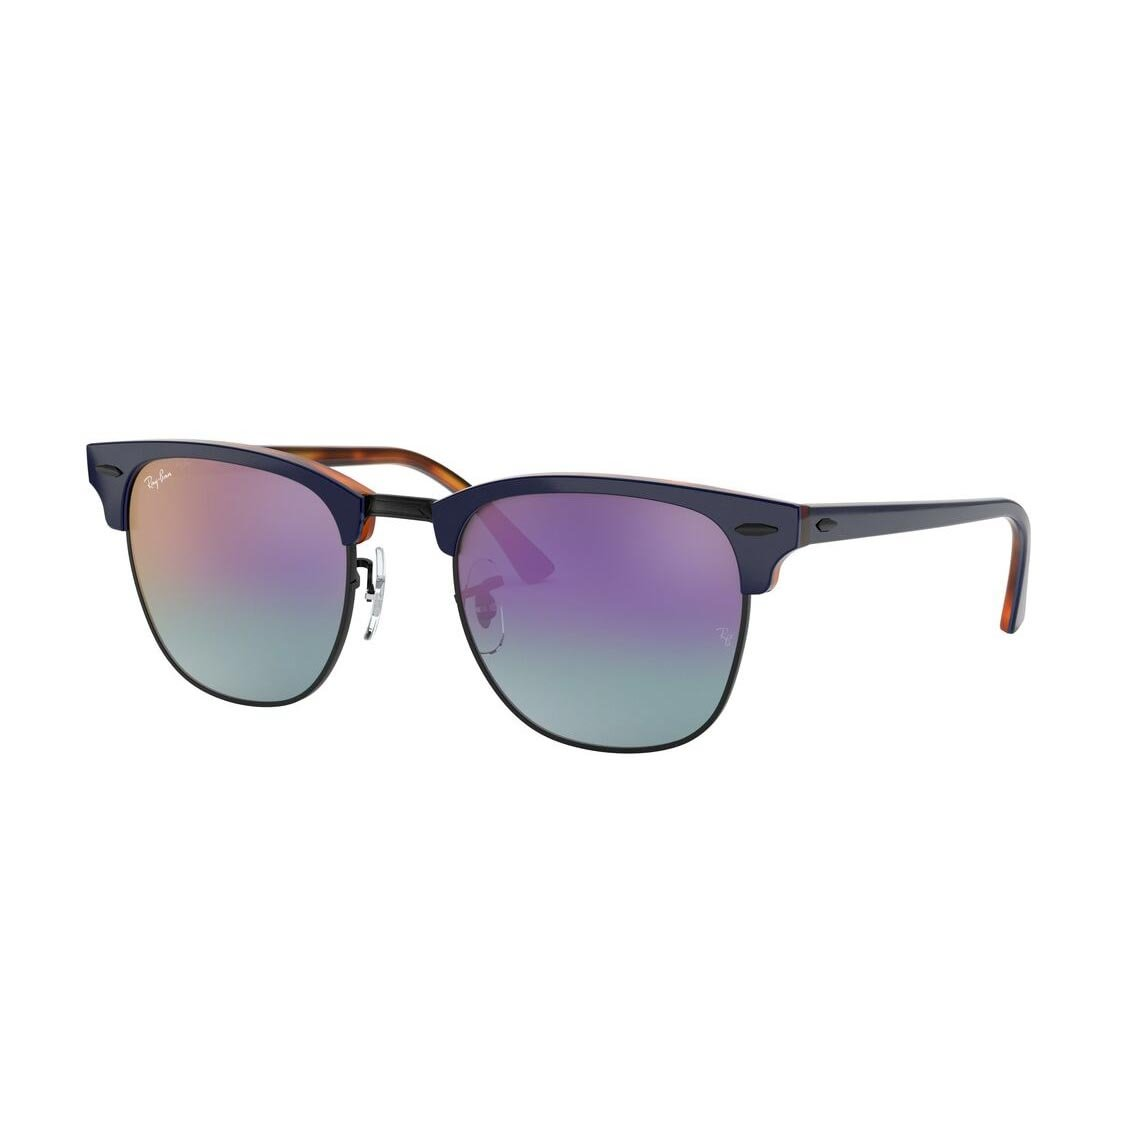 Ray-Ban Clubmaster RB3016 1278T6 4921